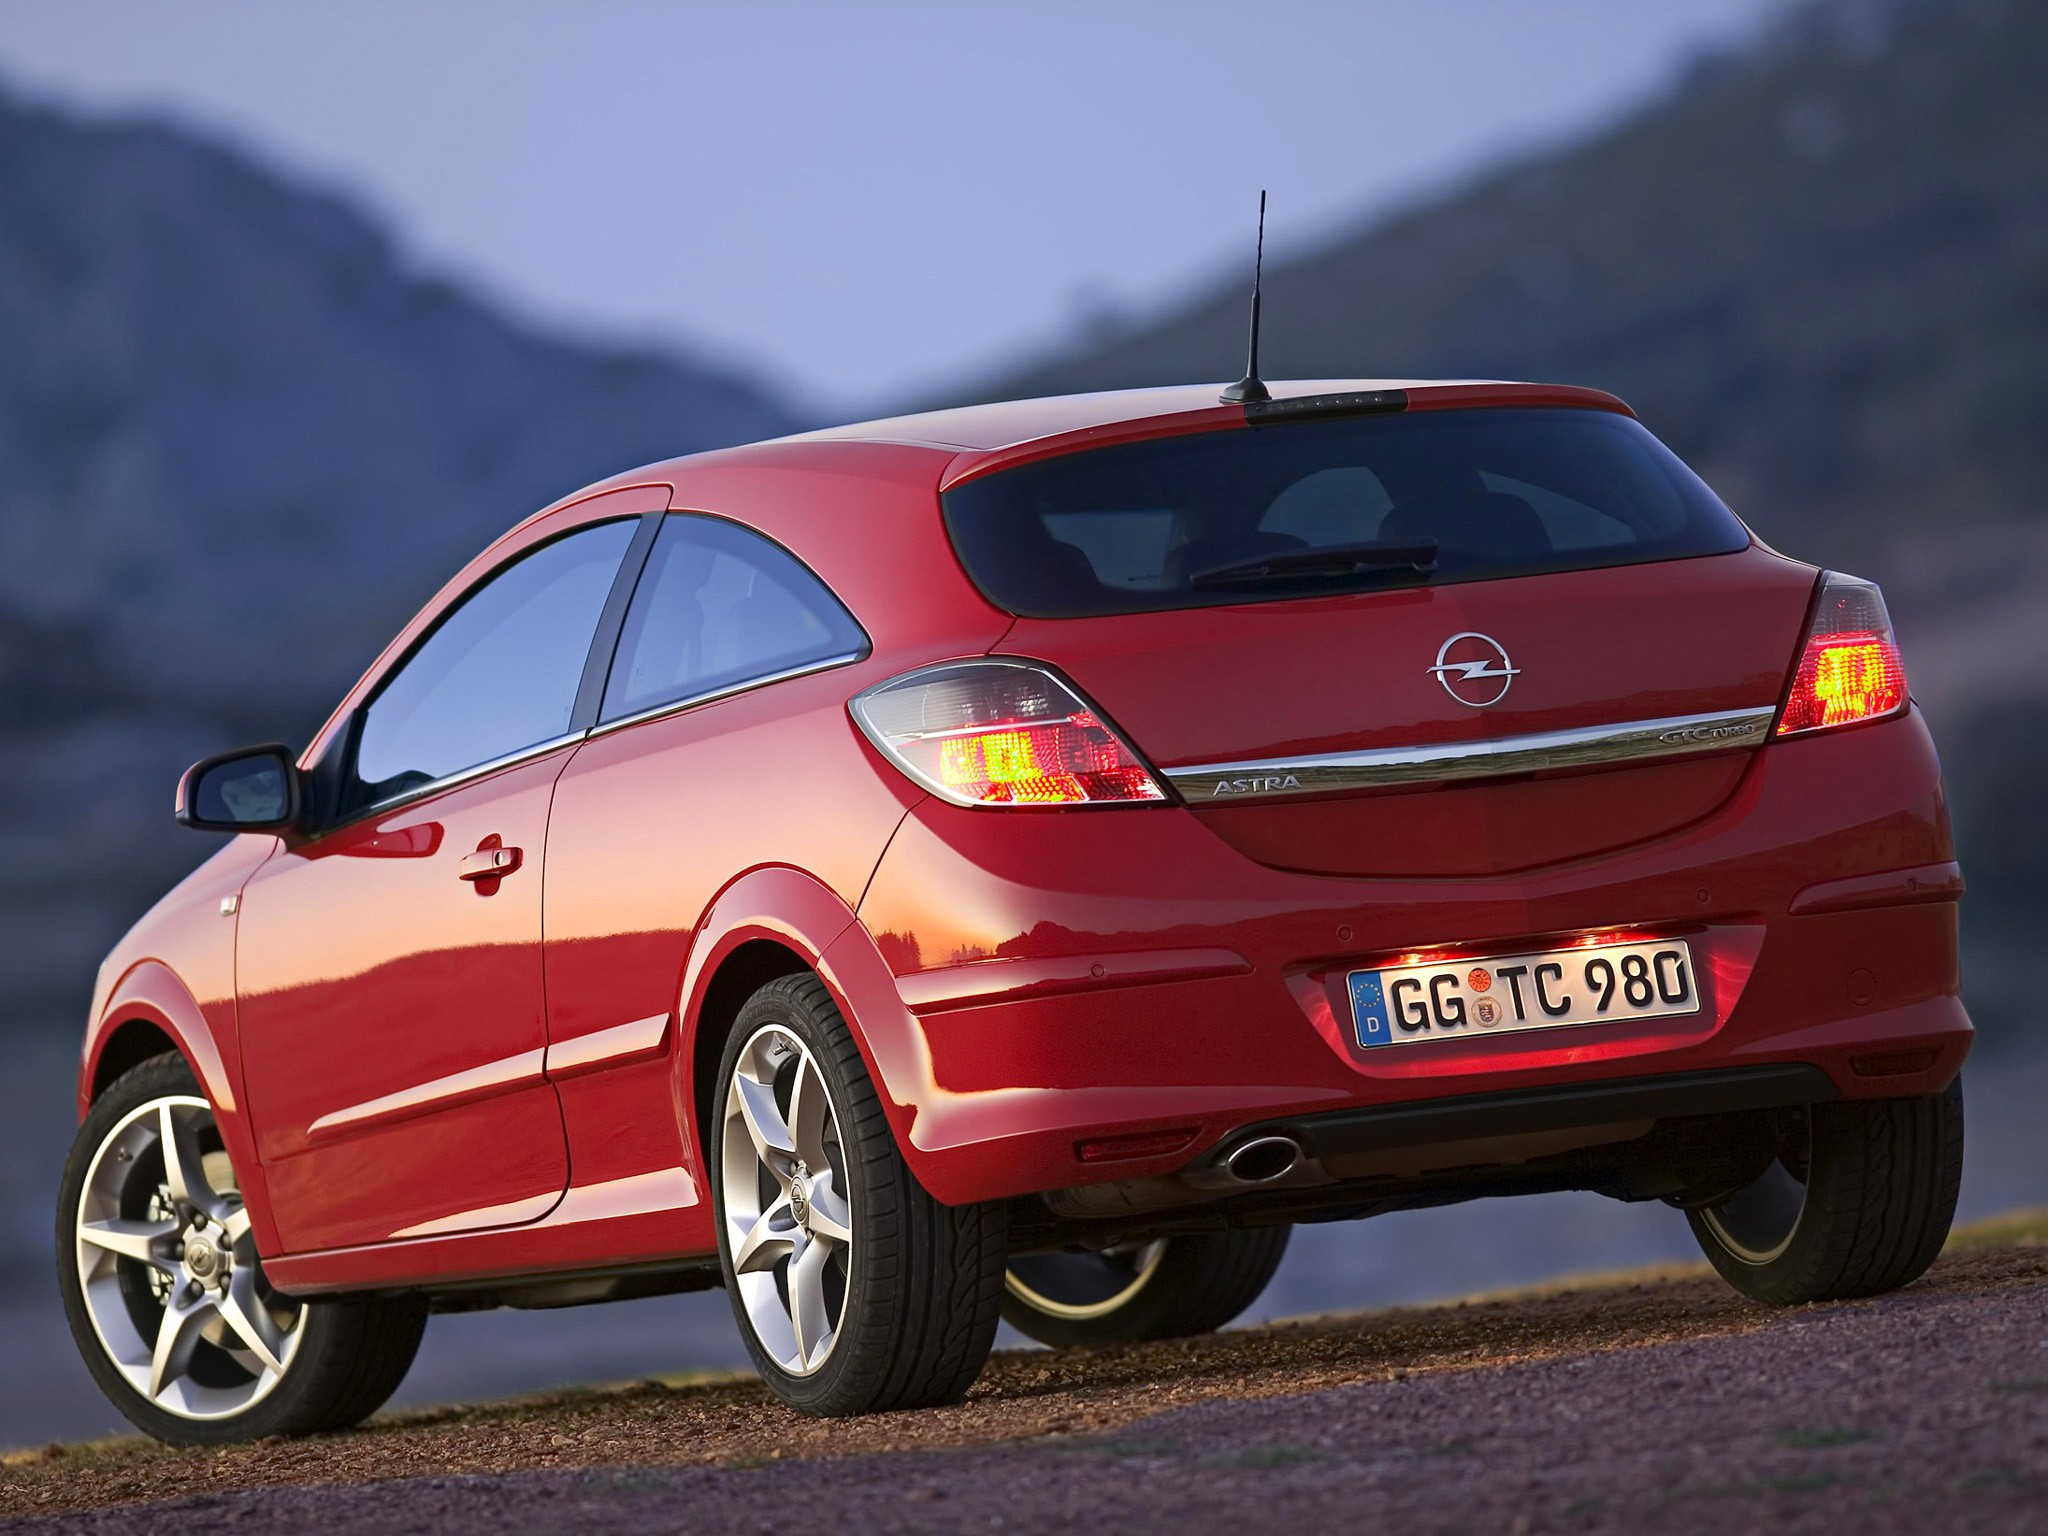 Opel Astra H 2004 - 2006 Hatchback 3 door #3 & Opel Astra H 2004 - 2006 Hatchback 3 door :: OUTSTANDING CARS